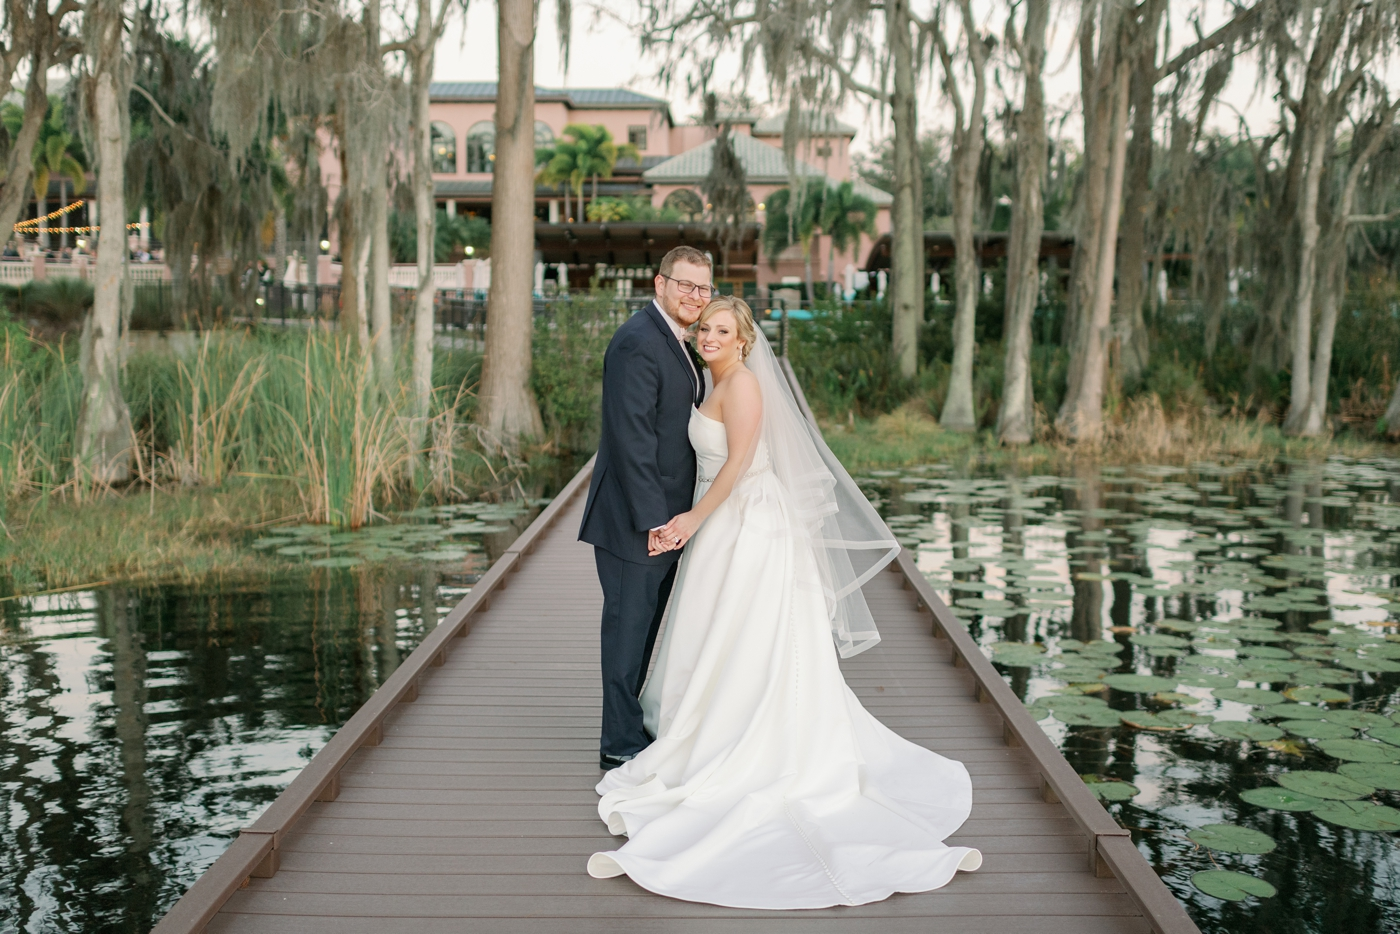 lake wedding venue orlando